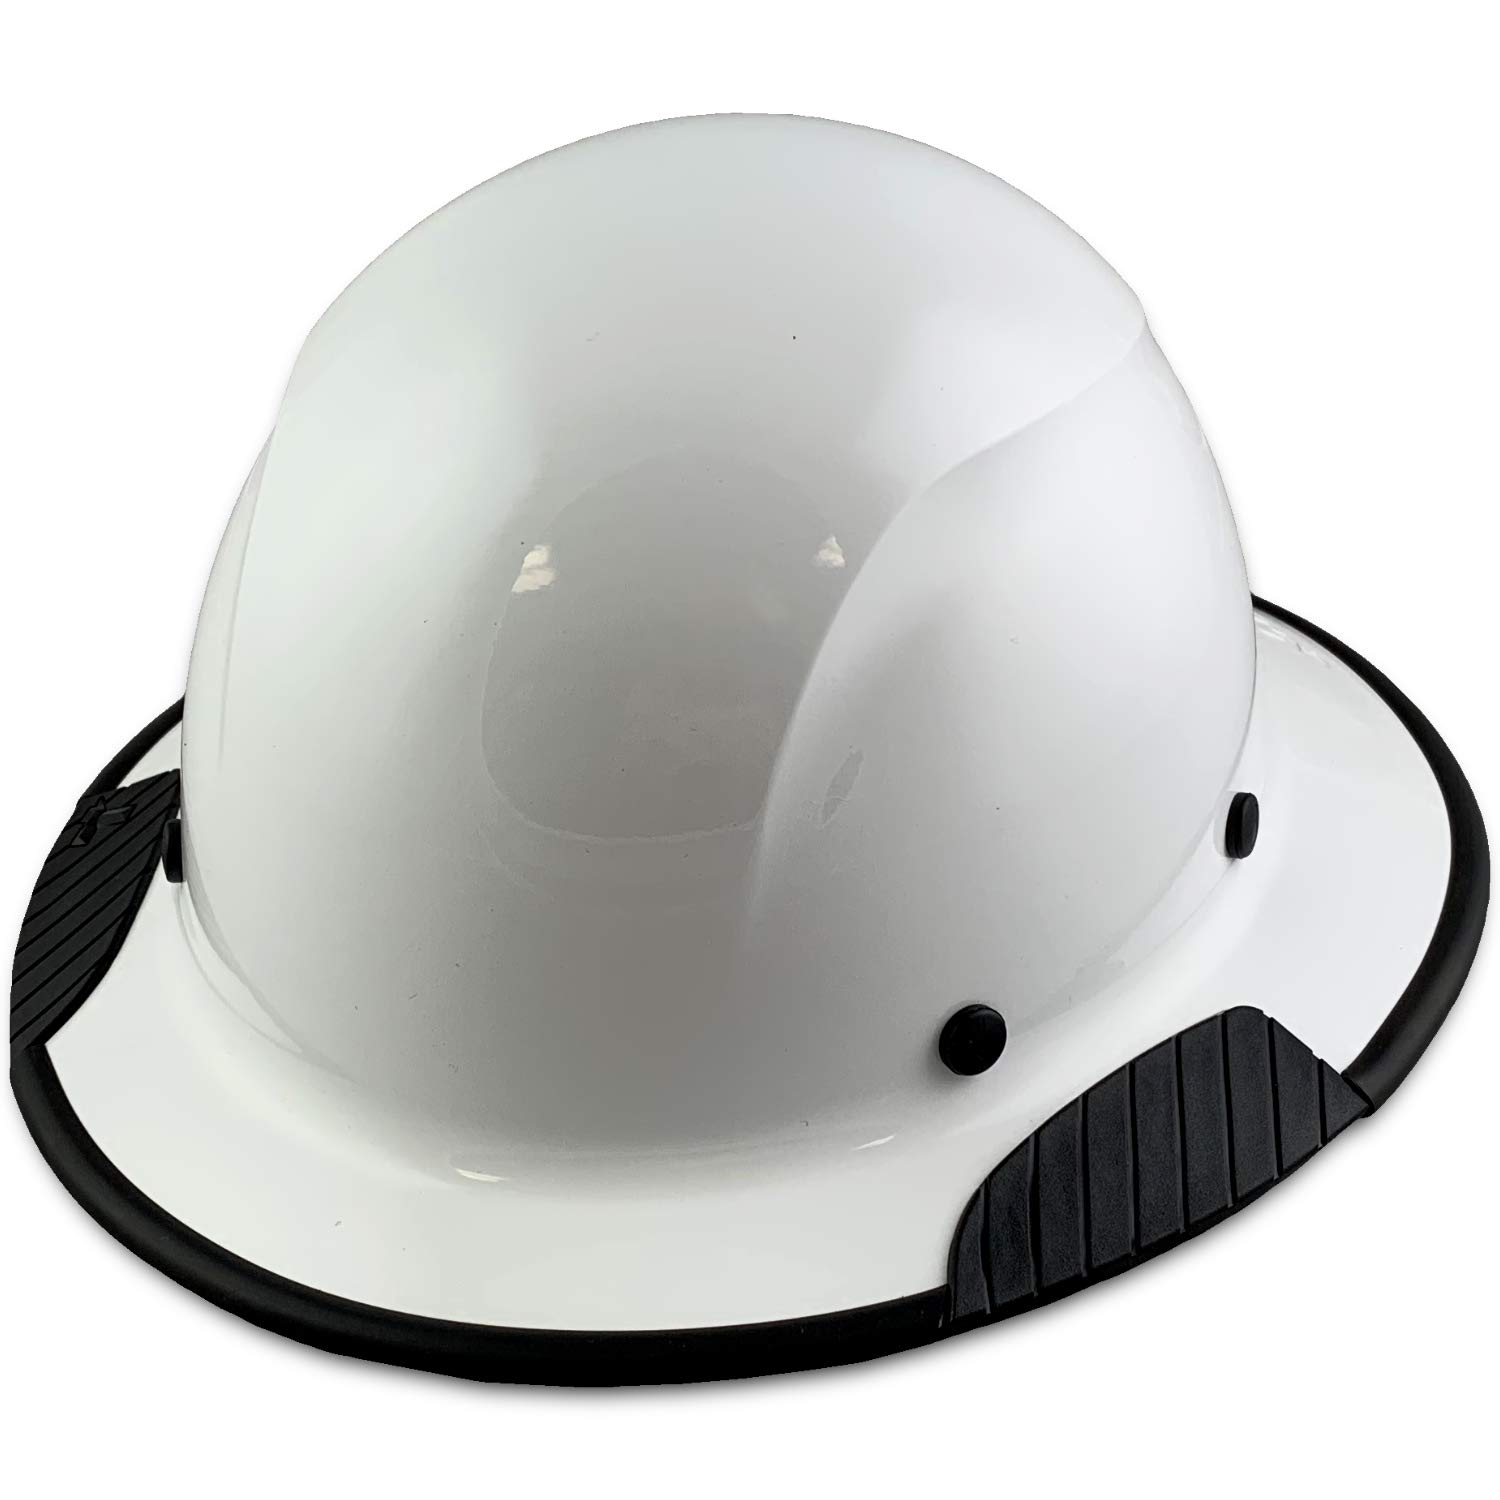 DAX Fiberglass Composite Hard Hat with Hard Hat Tote- Full Brim, White With Protective Edging